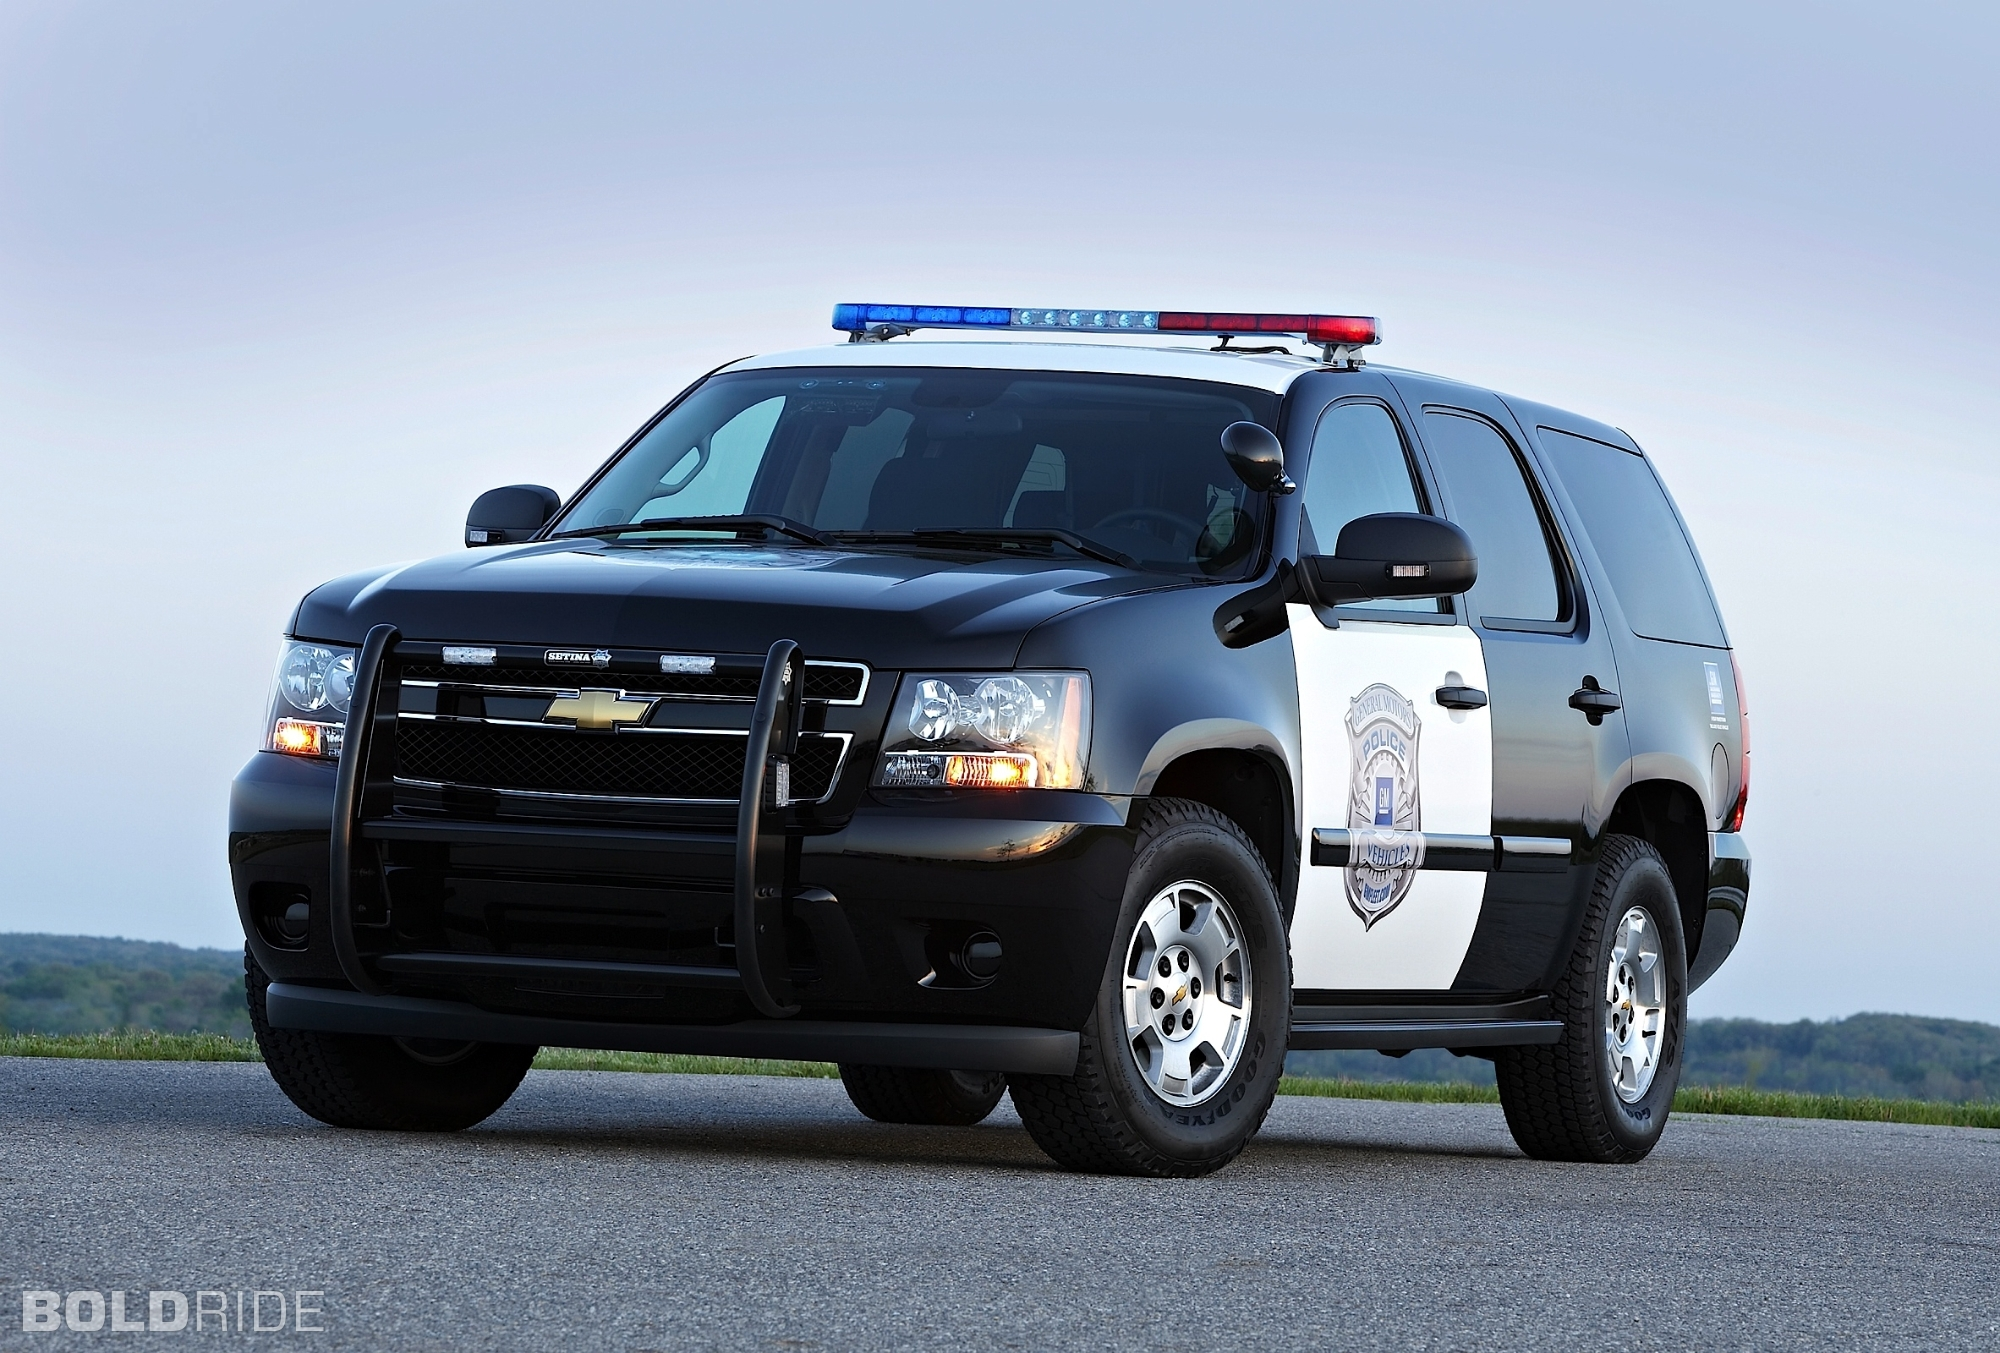 Chevy Small Suv >> 2011 Chevrolet Tahoe Police suv 4x4 g wallpaper | 2000x1353 | 110562 | WallpaperUP